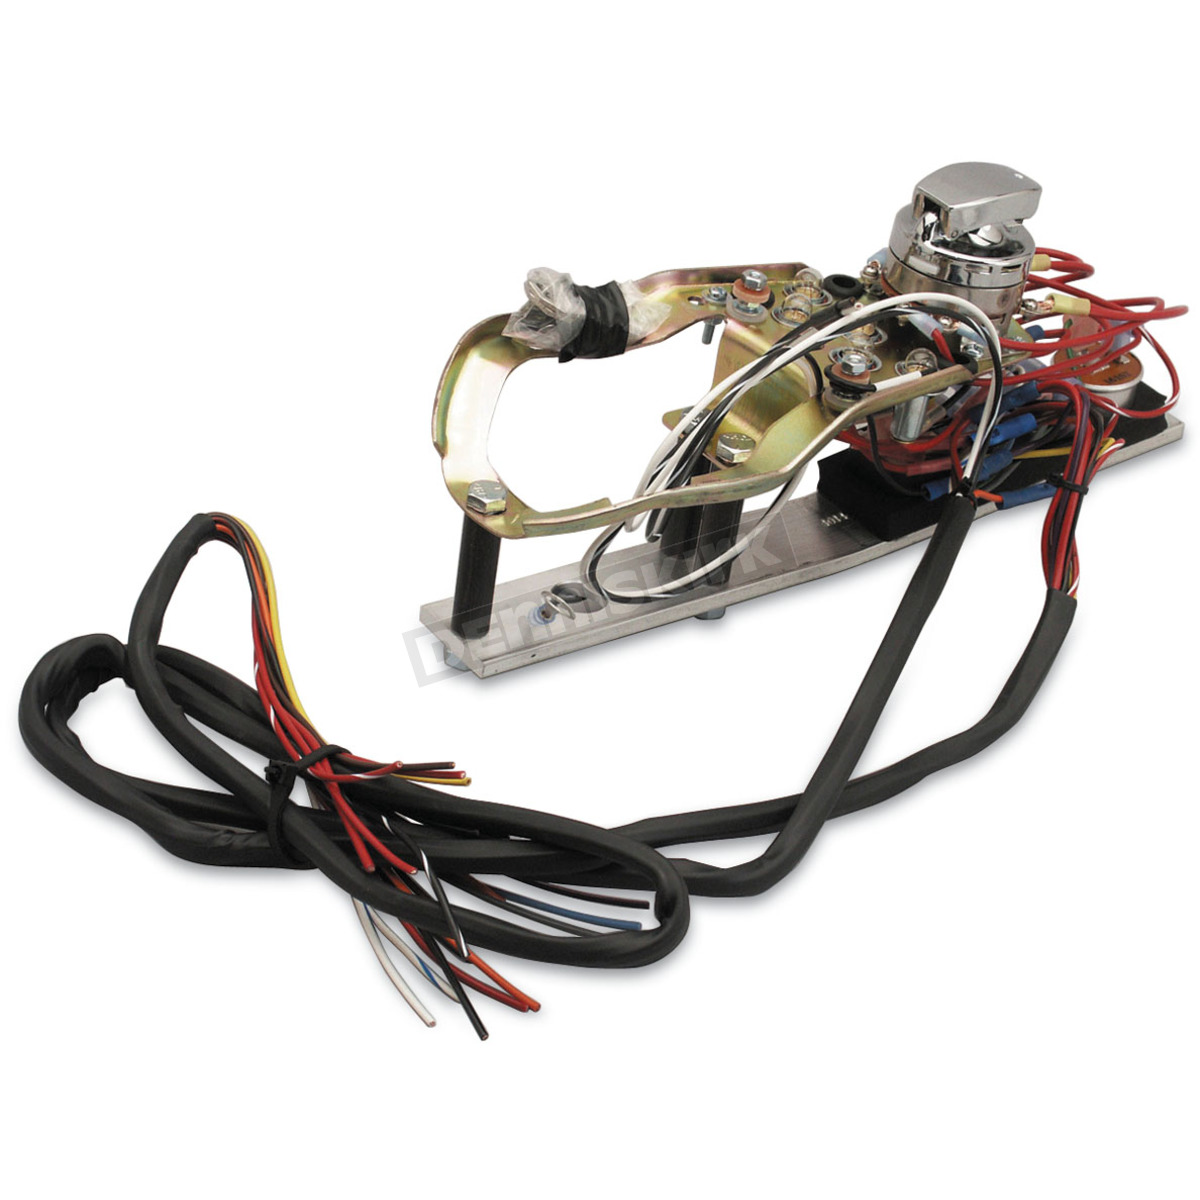 Wiring Harness Kit Harley Davidson